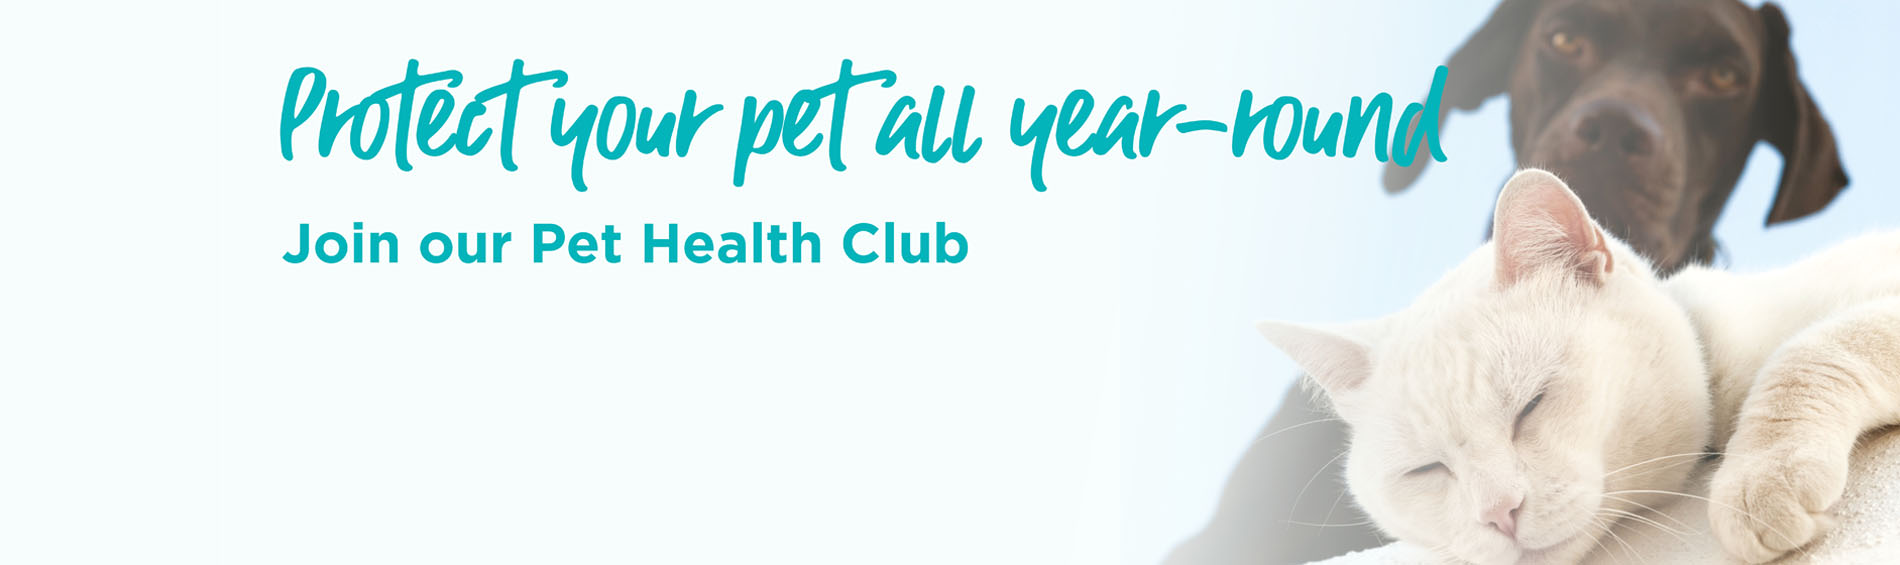 Pet Health Club in Northampton | Spinney Vets